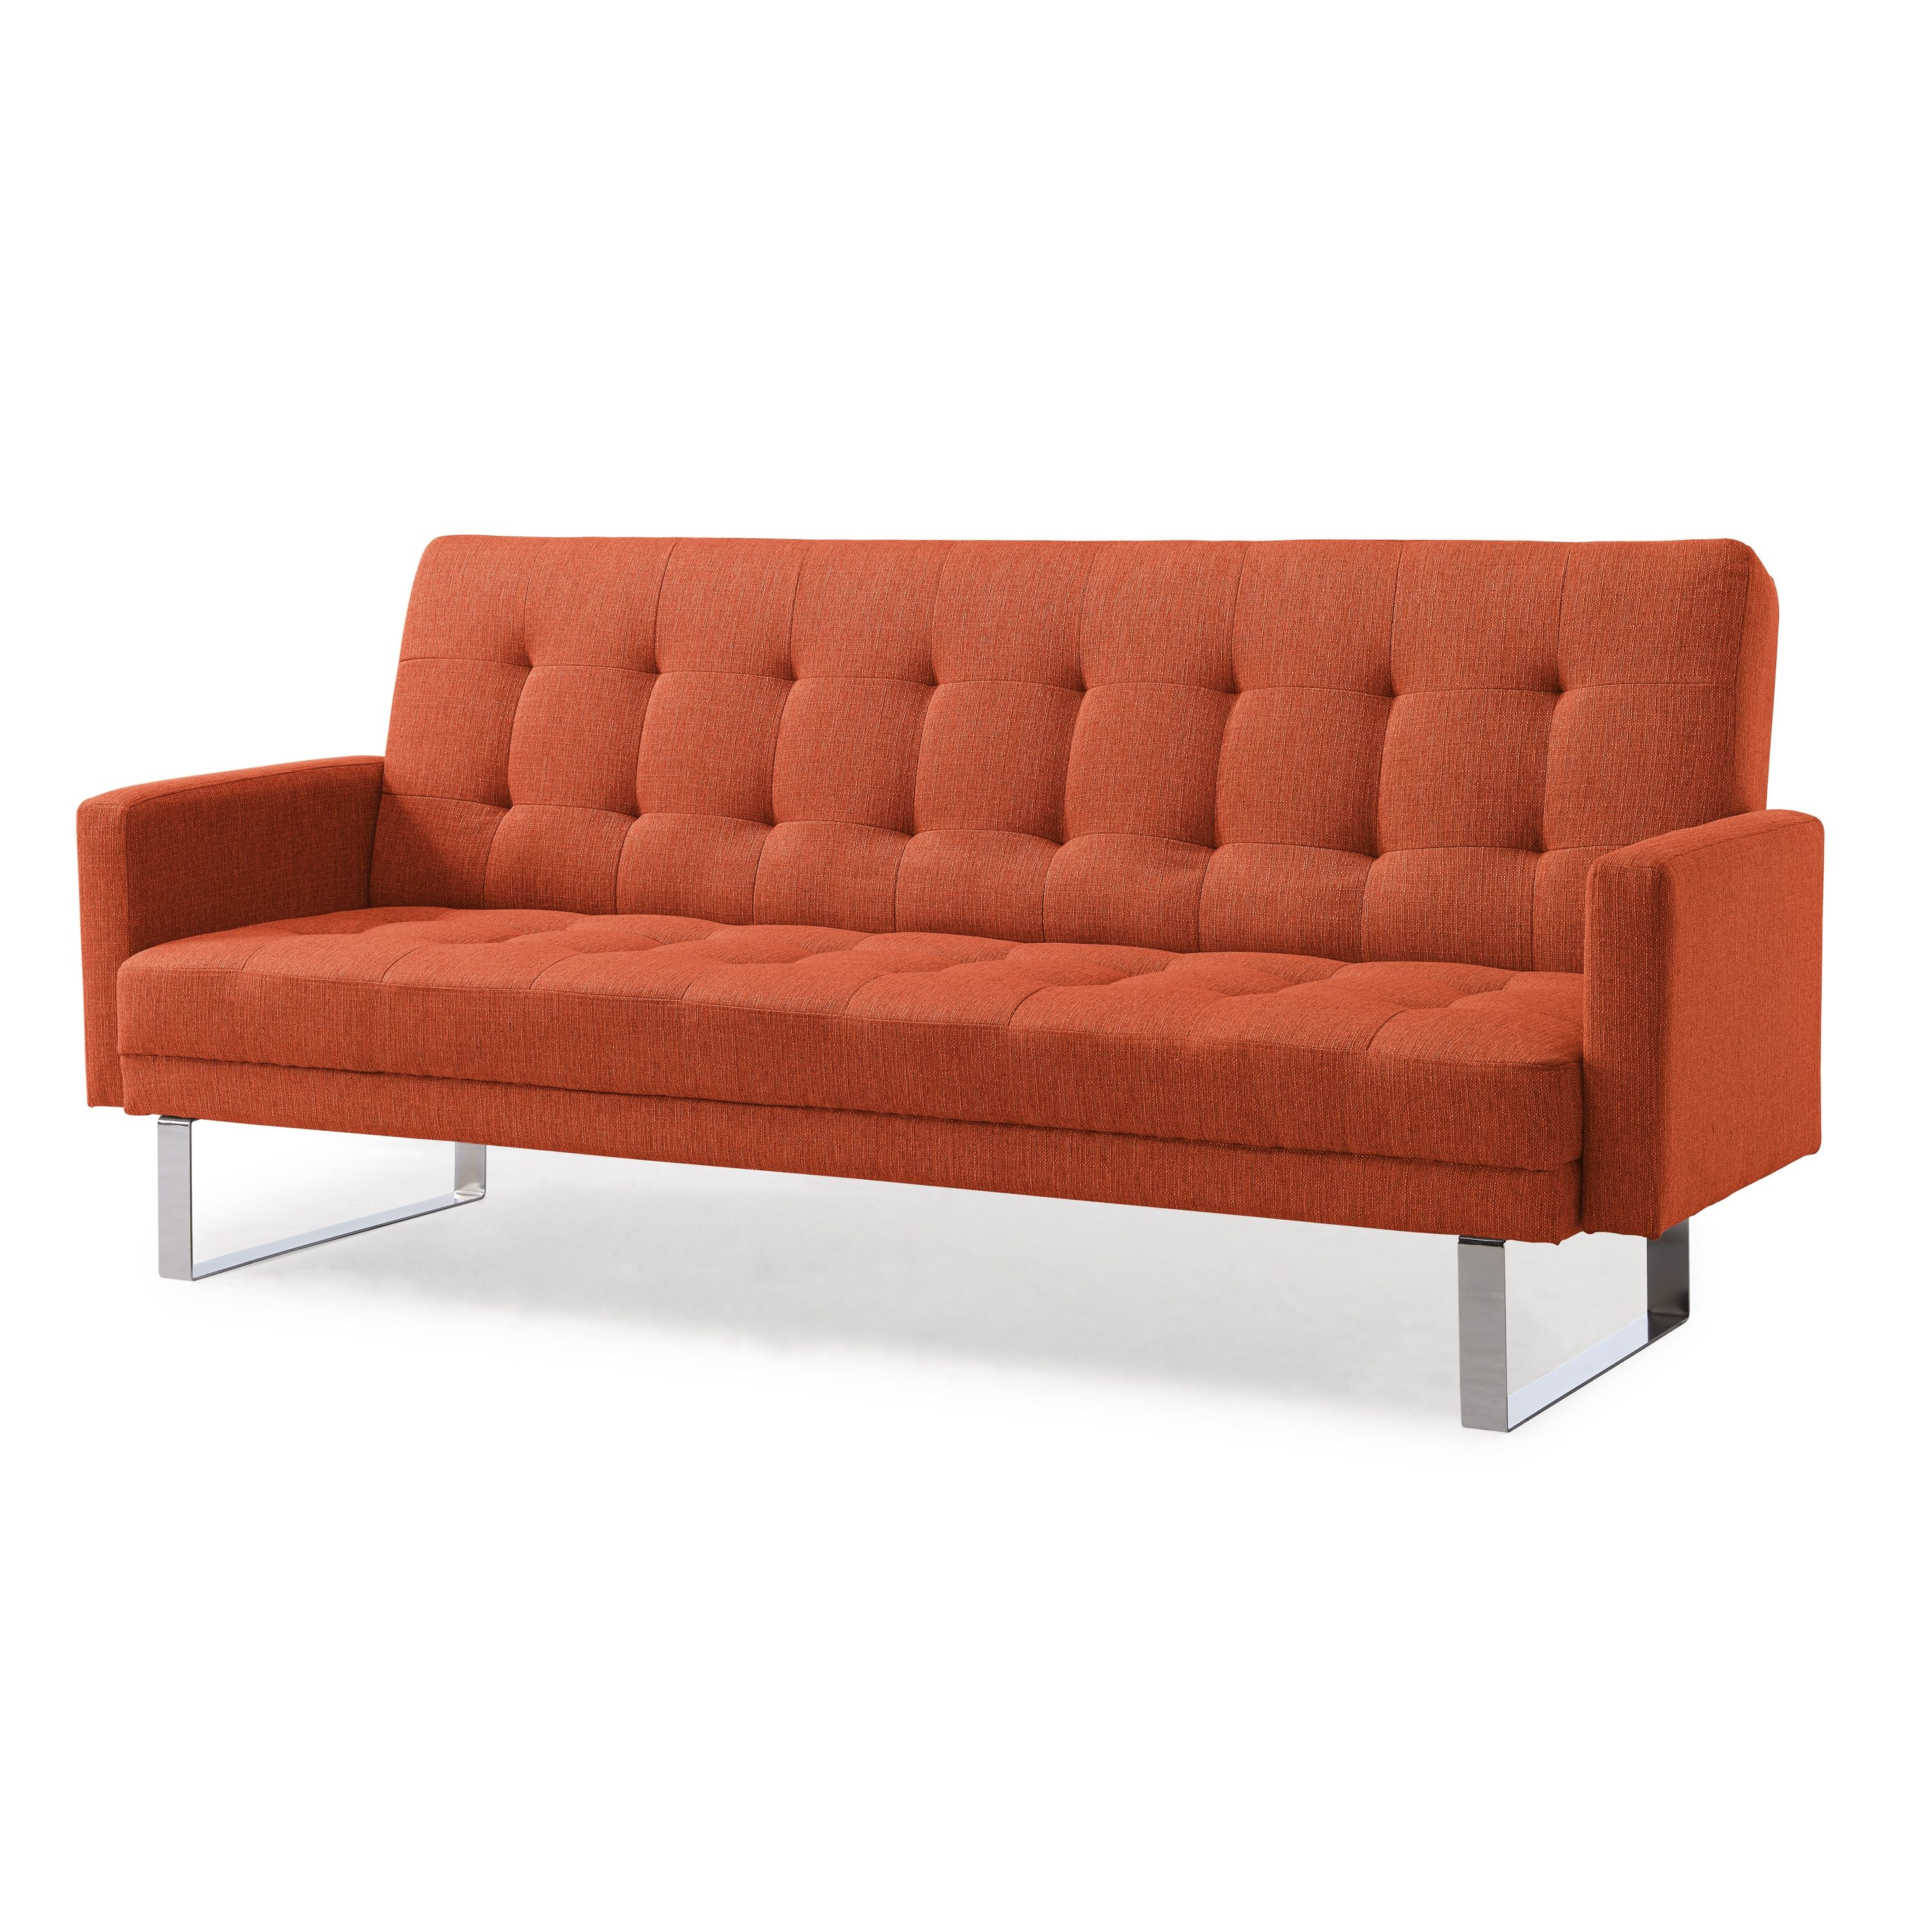 Handy Living Springfield Orange Linen Click Clack Futon Sofa Bed Free Shipping Today Com 23746047